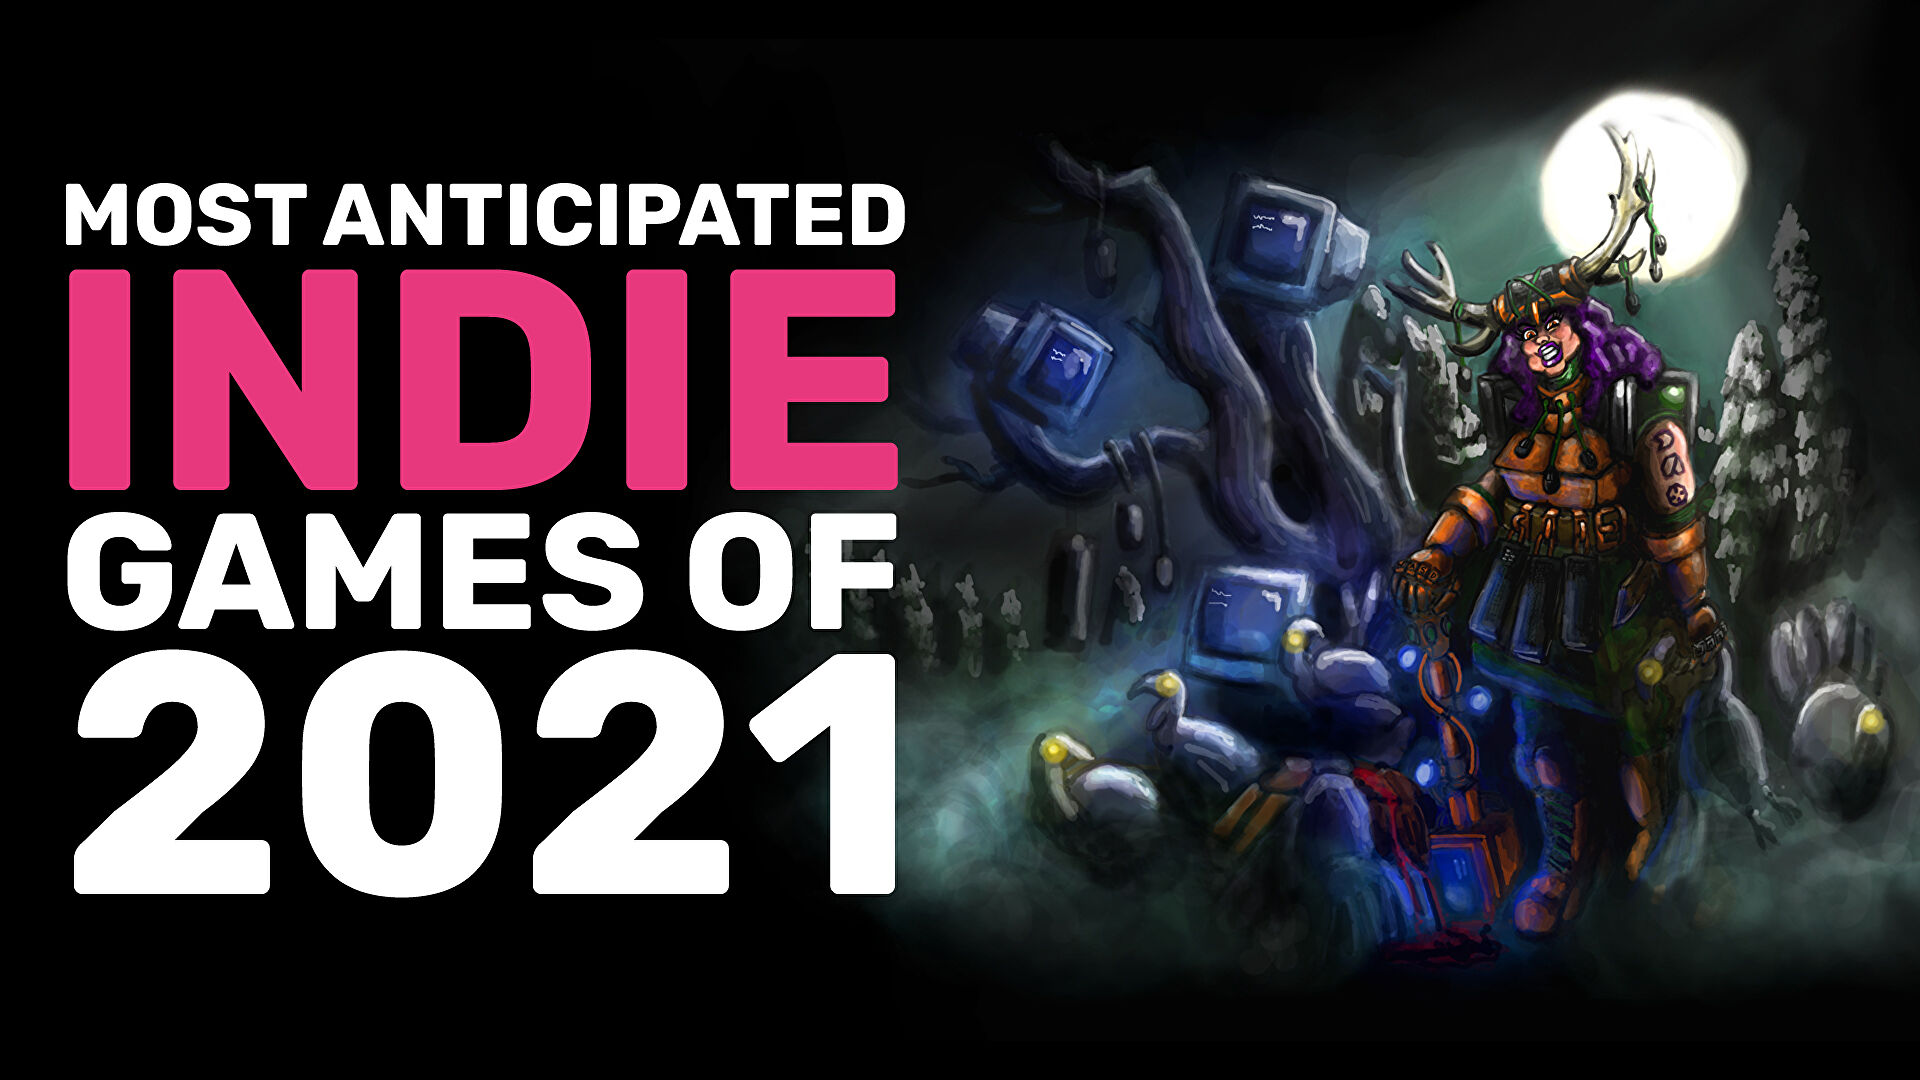 Our most anticipated indie games of 2021